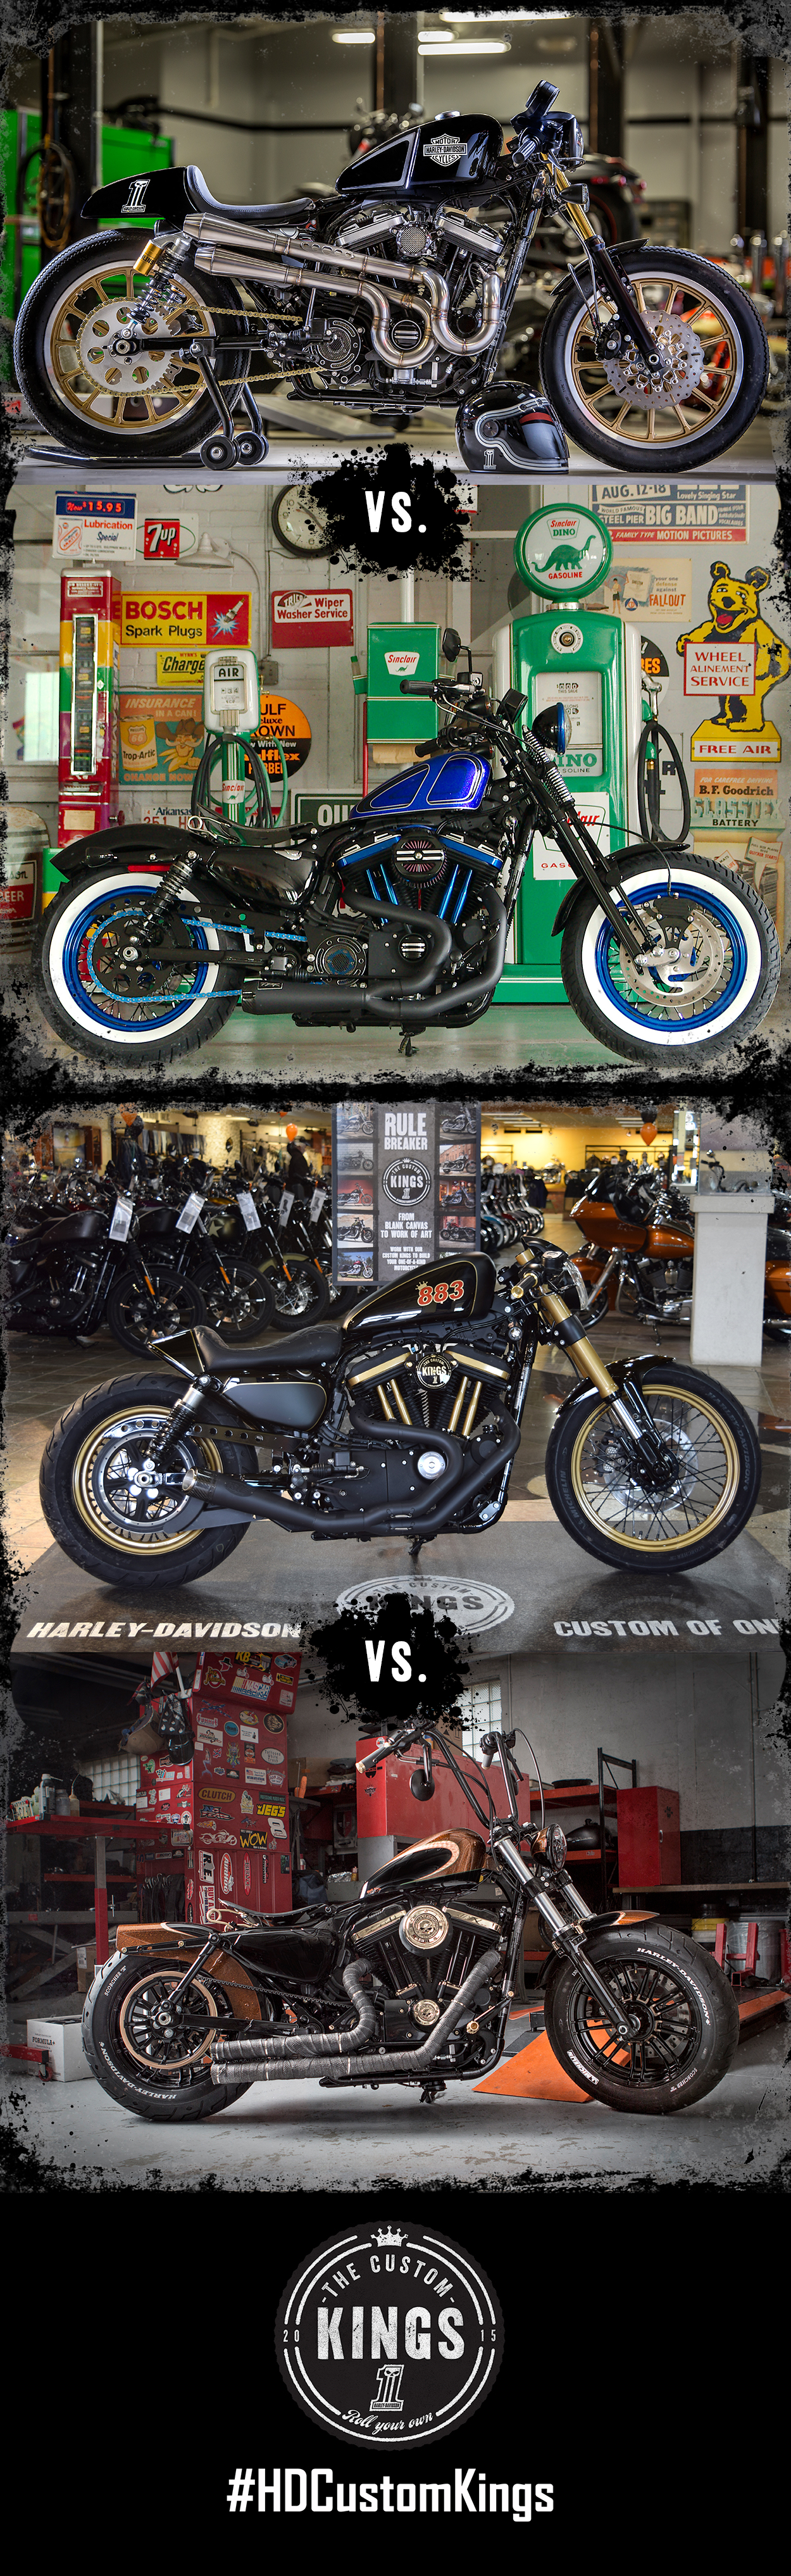 Win a harley davidson competition